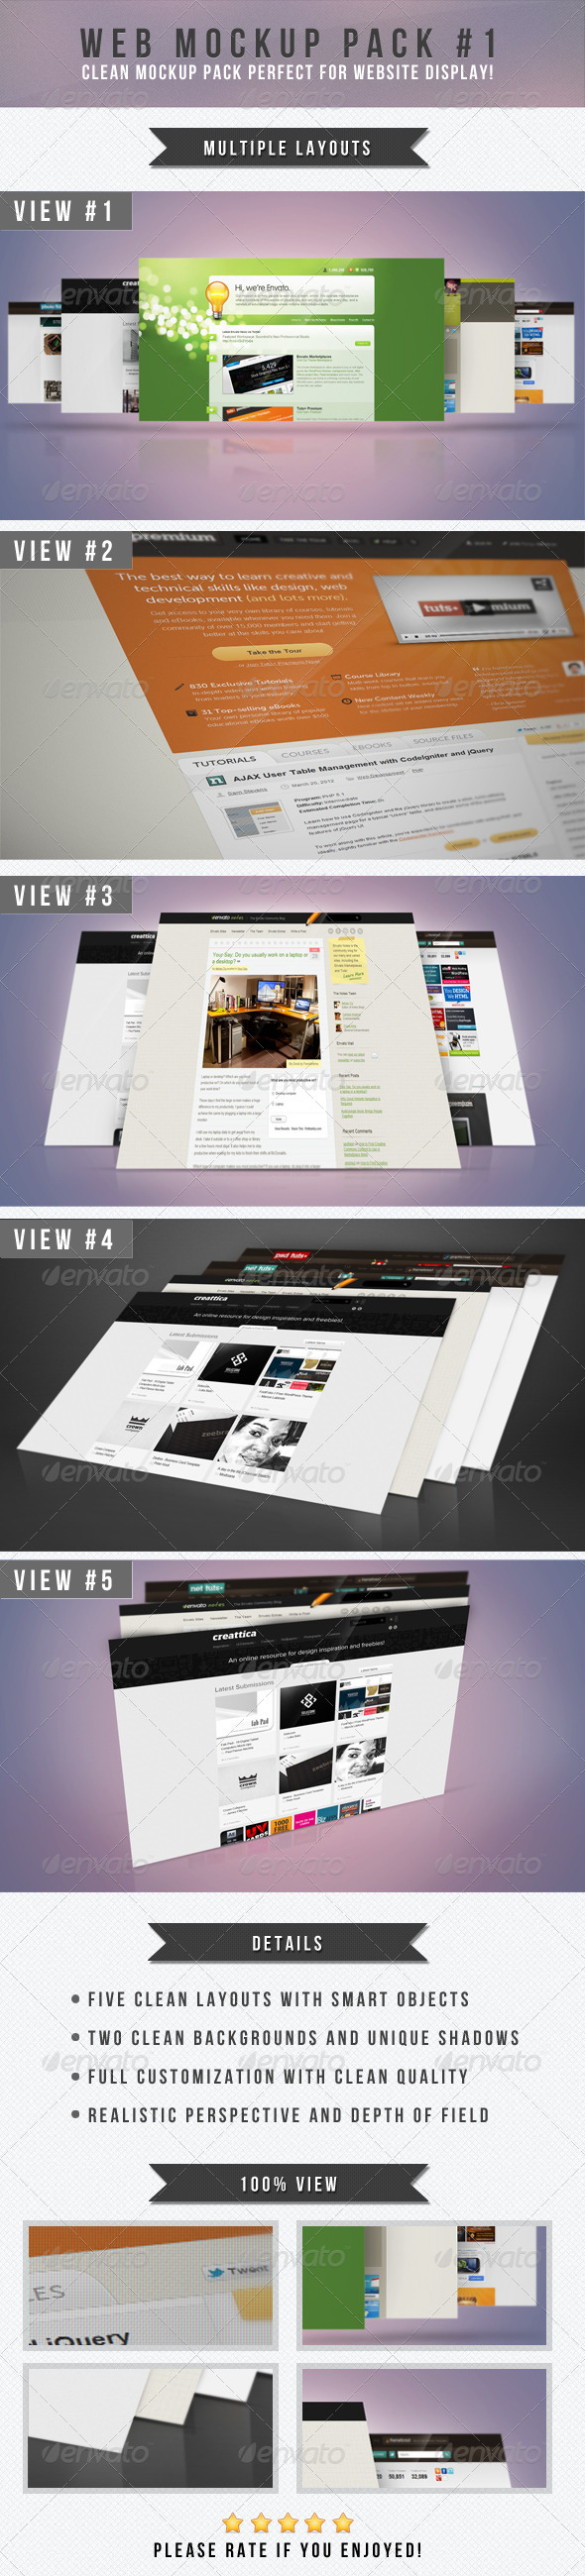 Web Mockup Pack #1 - Website Displays